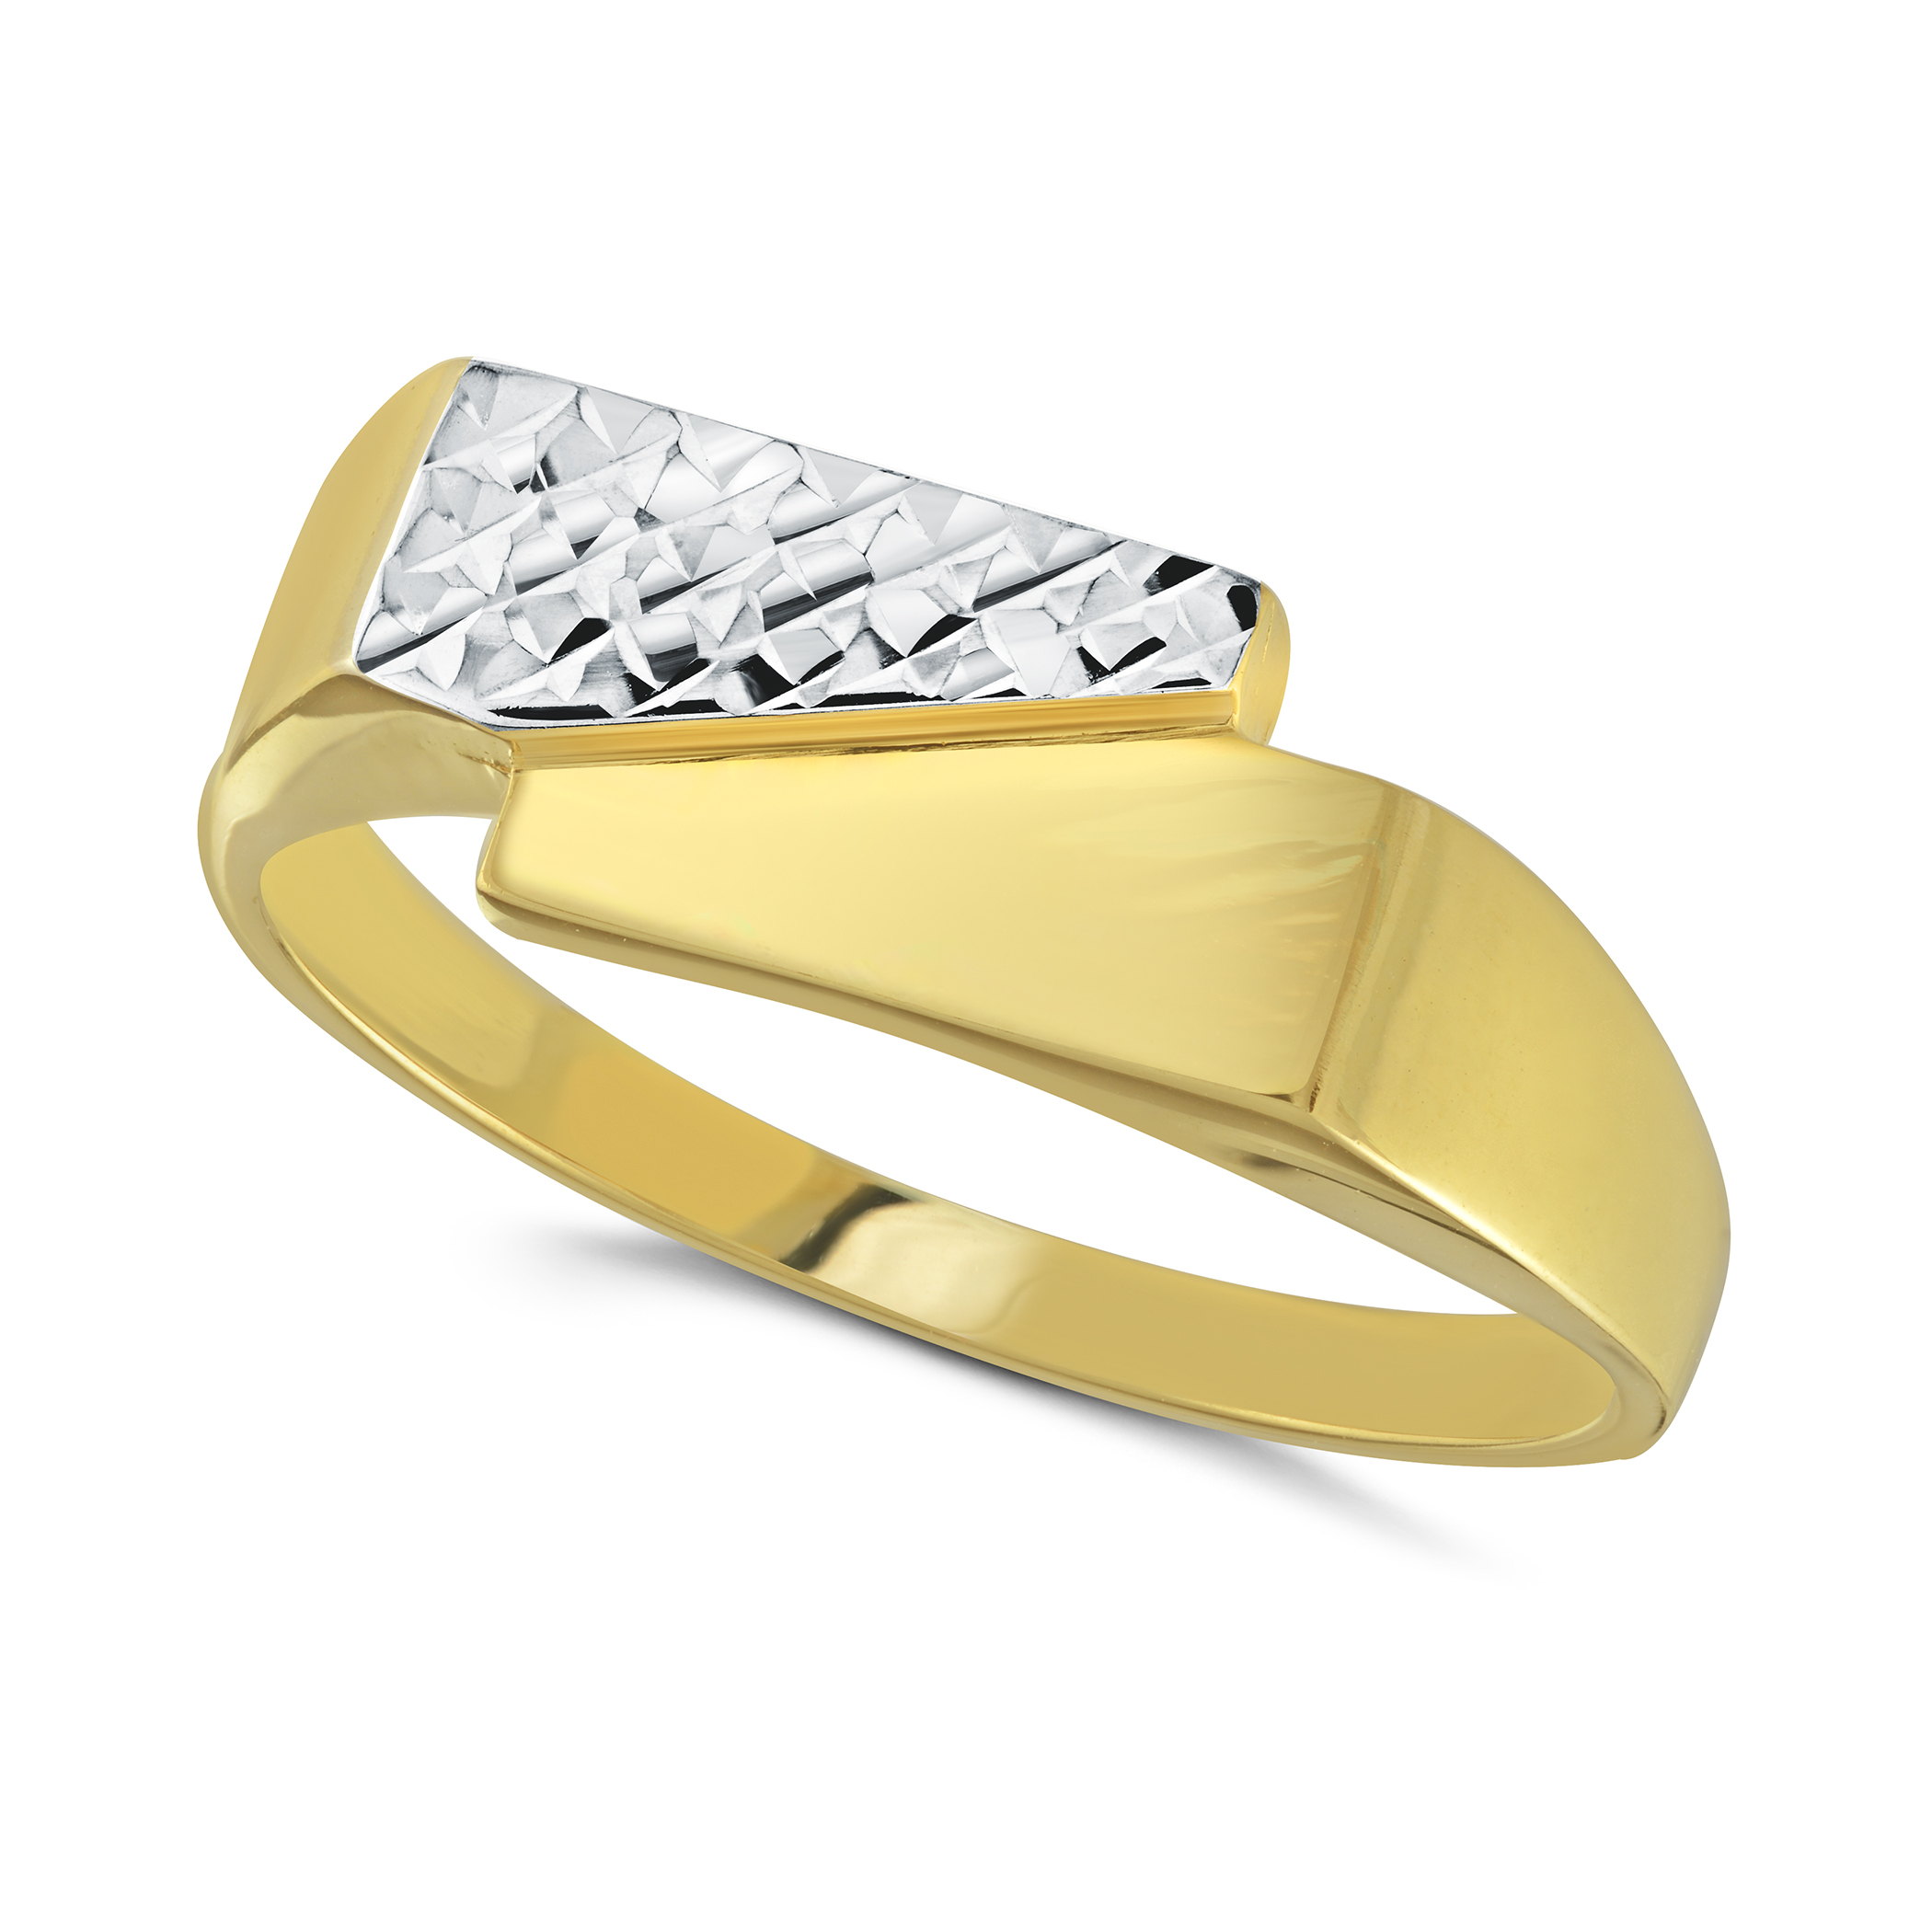 Boy's ring - 10K 2-tone Gold (yellow and white)